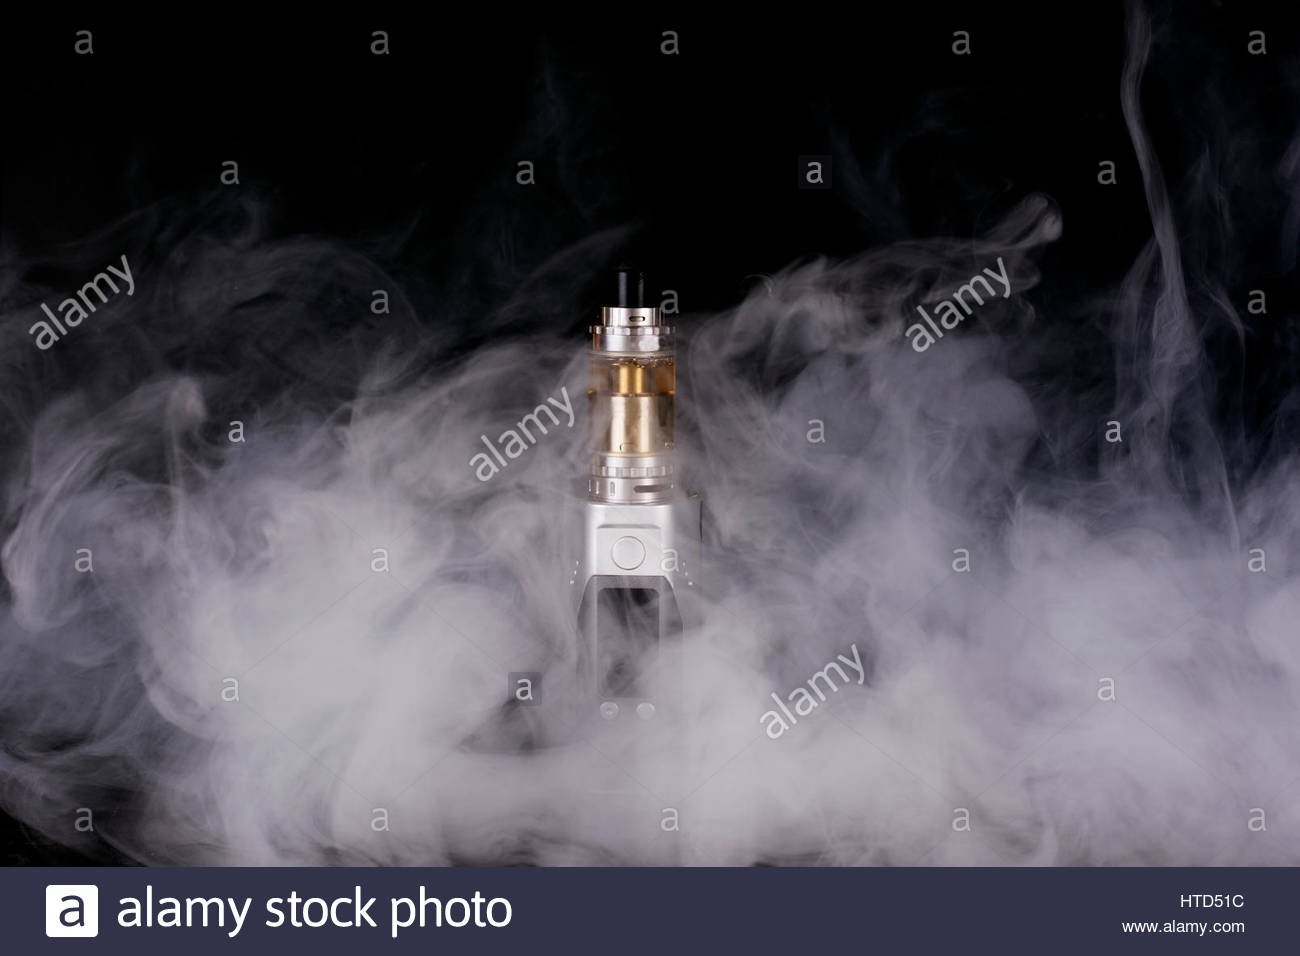 electorinc cigarette and smoke on isolated background - Stock Image